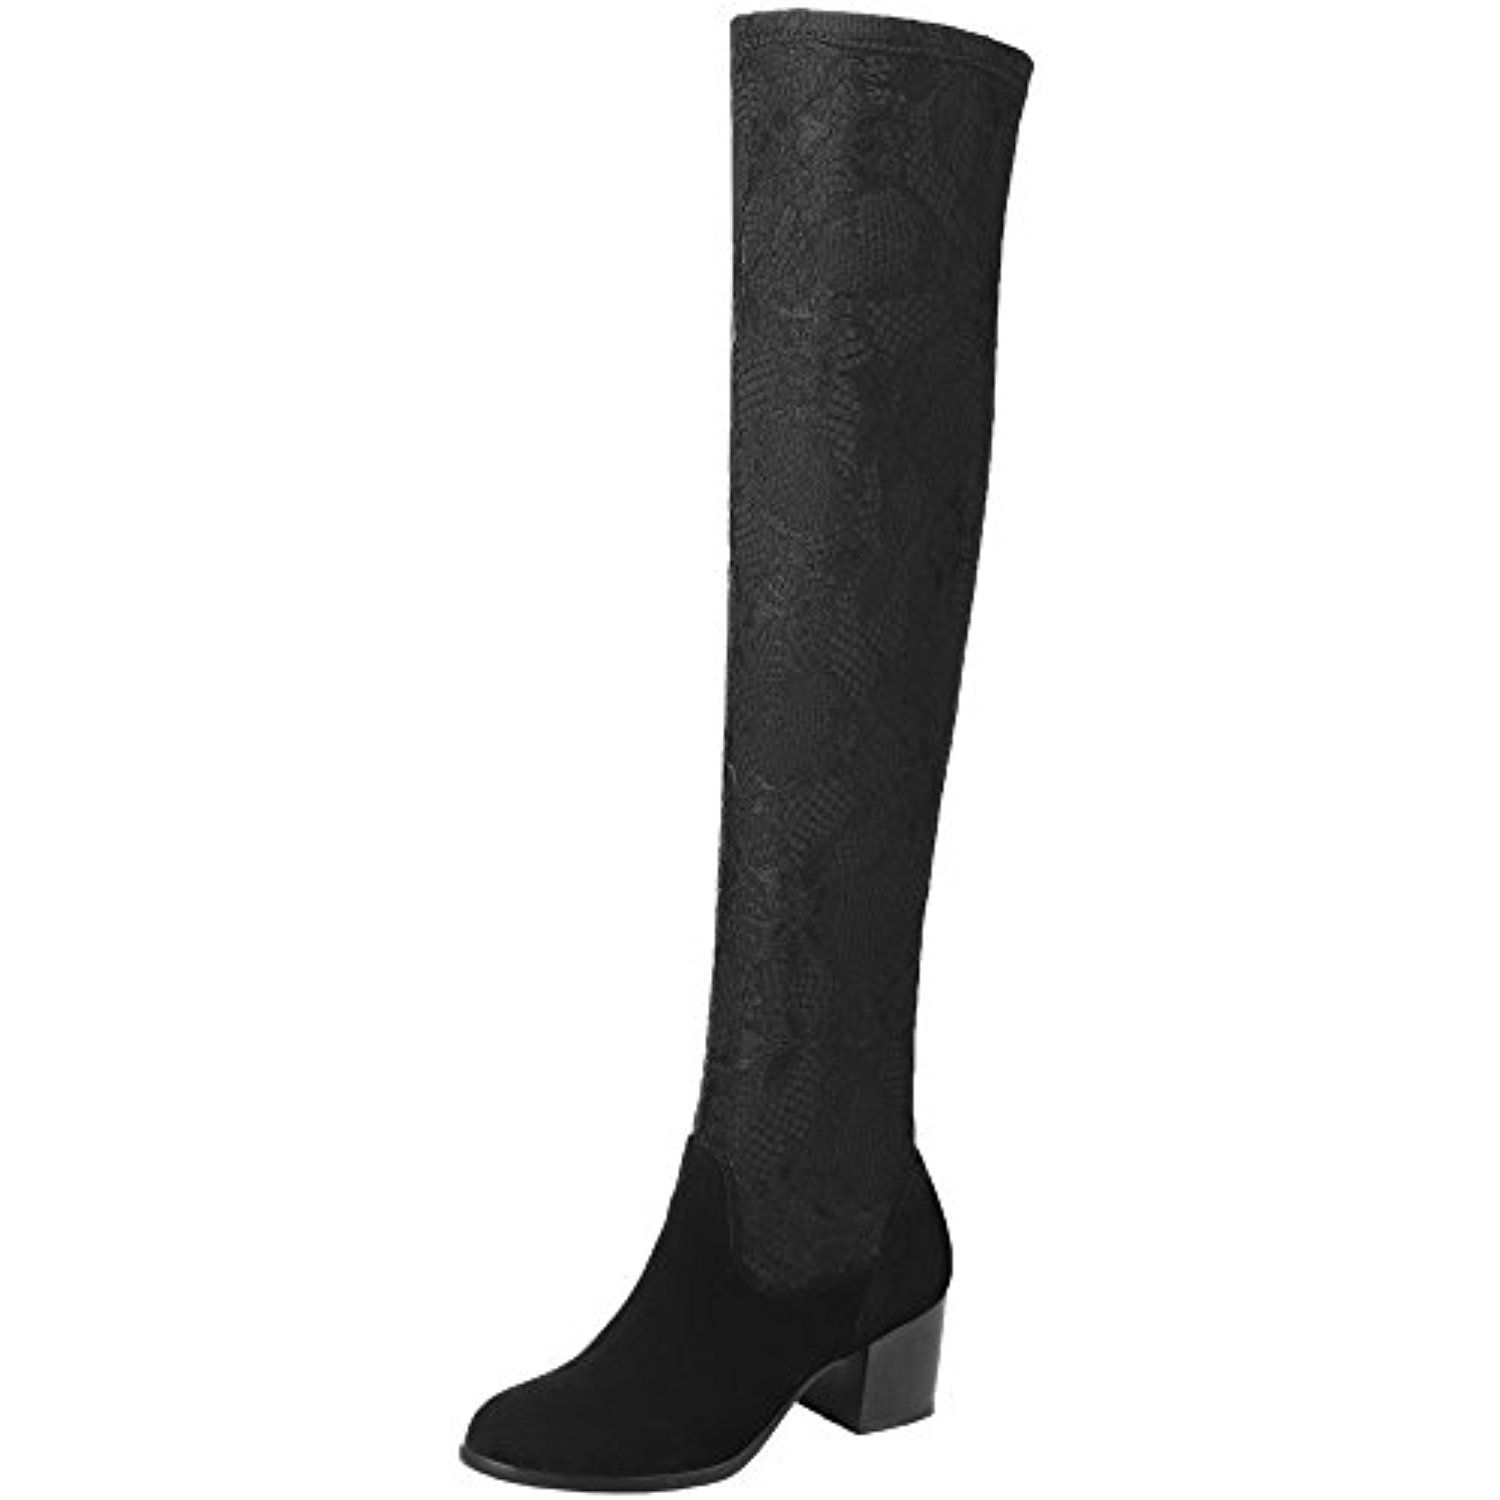 Over The Knee Boots Sexy Lace Mesh Elastic Chunky Women Thigh High Boots By BIGTREE